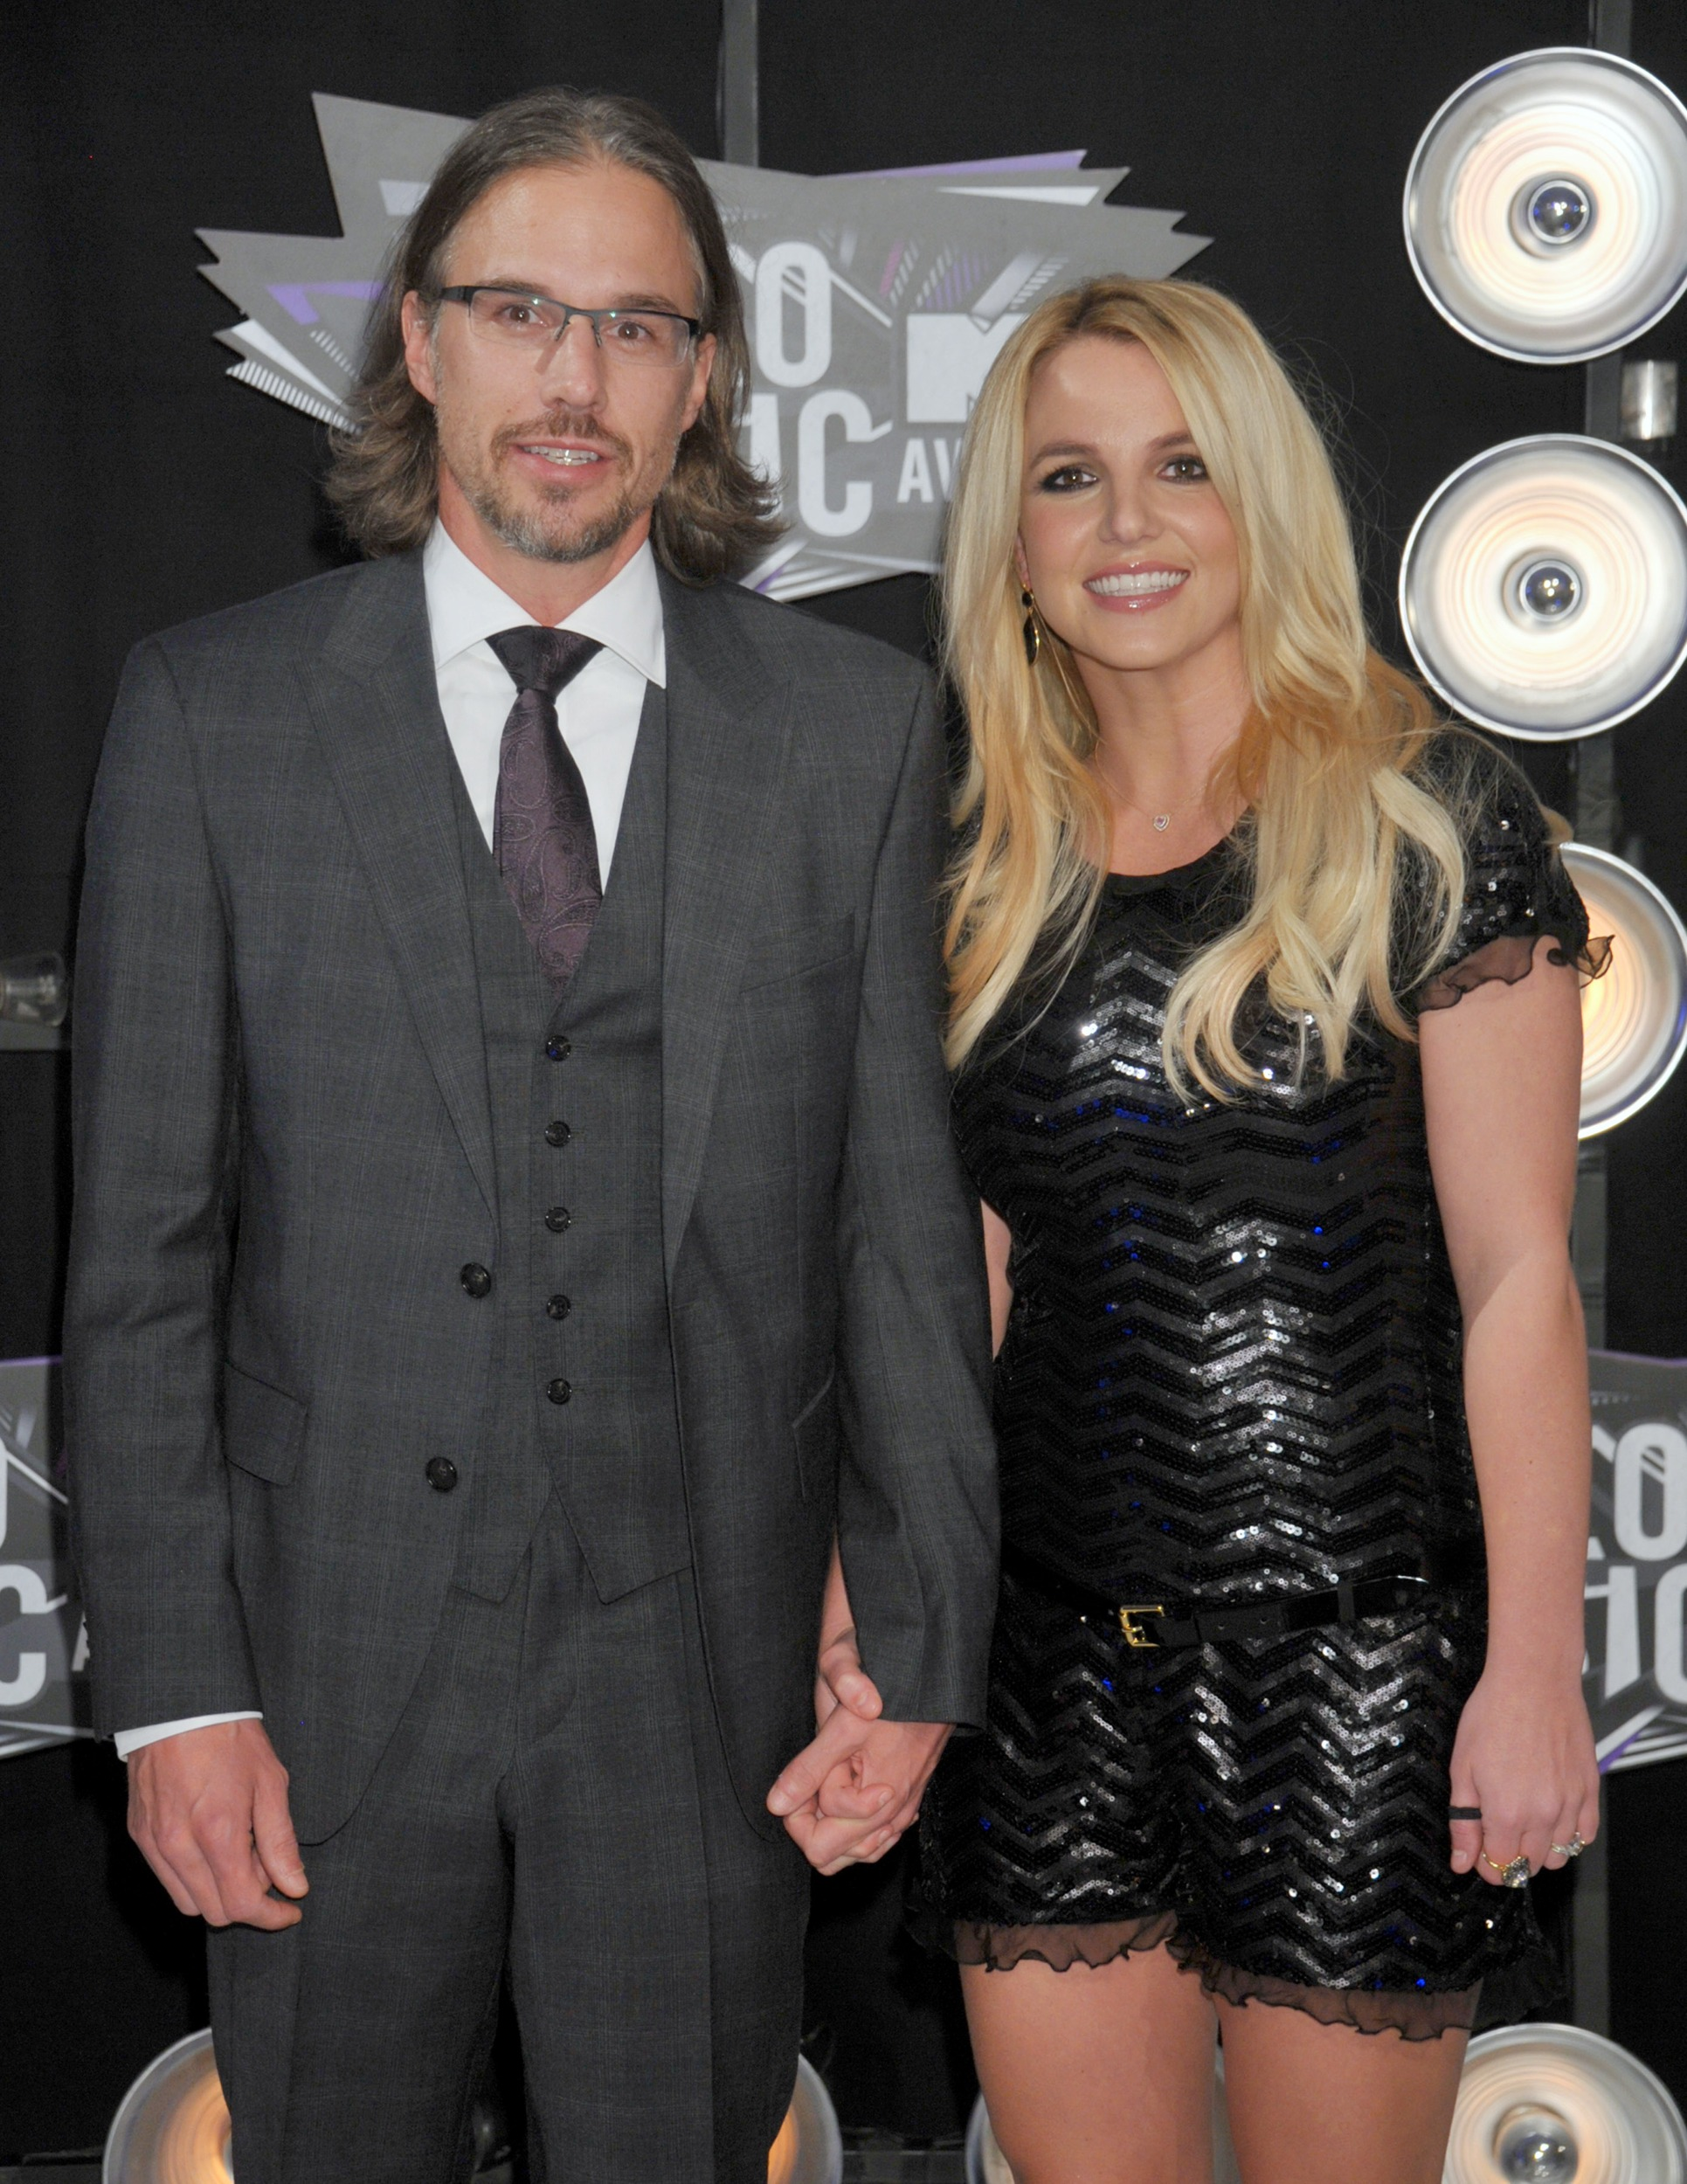 dancing with federline britney spears pictures to pin on